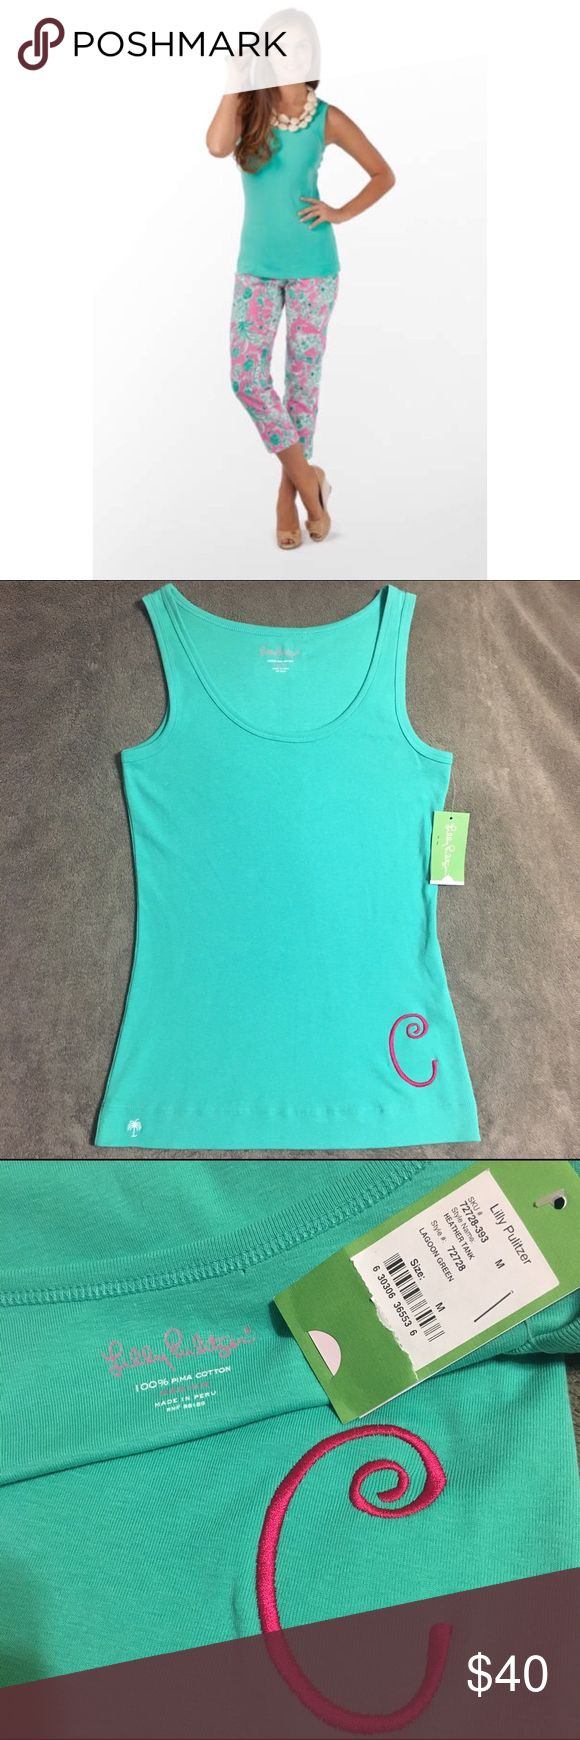 """NWT Lilly Pulitzer Monogrammed Heather Tank Top Lilly Pulitzer Monogrammed Heather Tank Top. Brand new with tags, never worn, but the price was removed from the tag. Lagoon green color with an embroidered pink """"C."""" This is the perfect gift for any Lilly lover with the initial C! Stock photo does not show the monogram. Lilly Pulitzer Tops Tank Tops"""